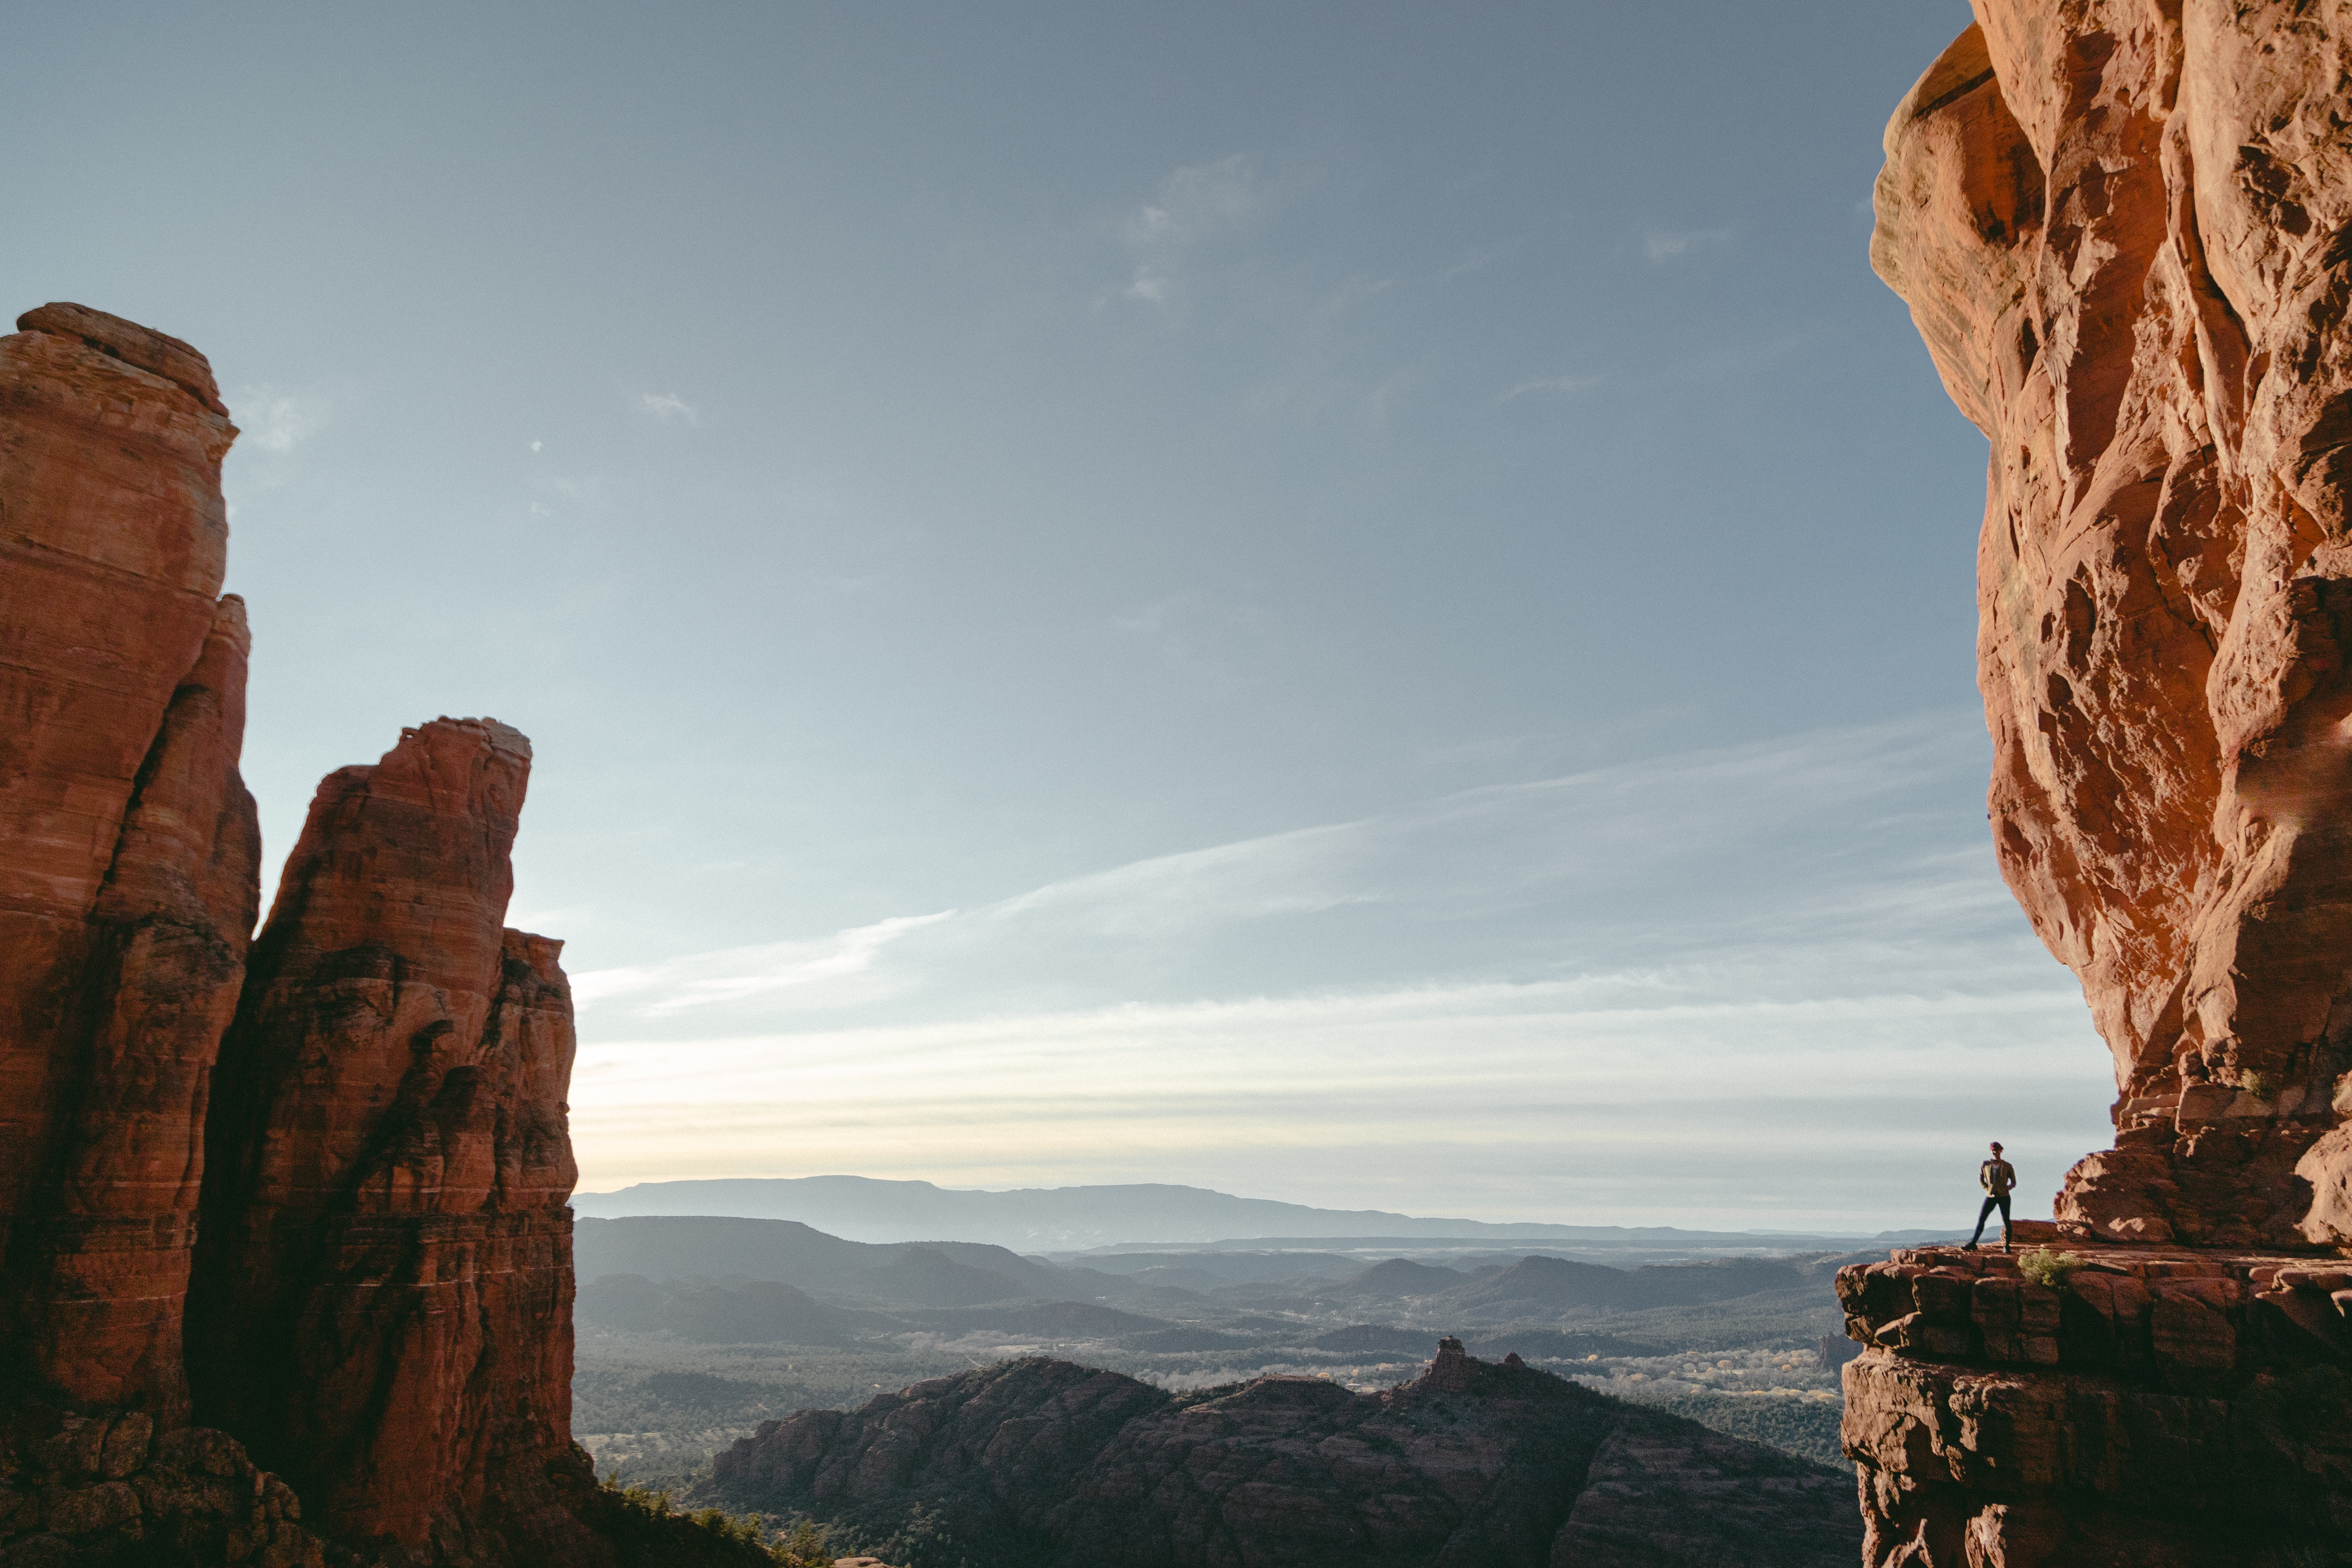 123291 download wallpaper Nature, Canyon, Cliff, Silhouette, Rocks, Mountains screensavers and pictures for free